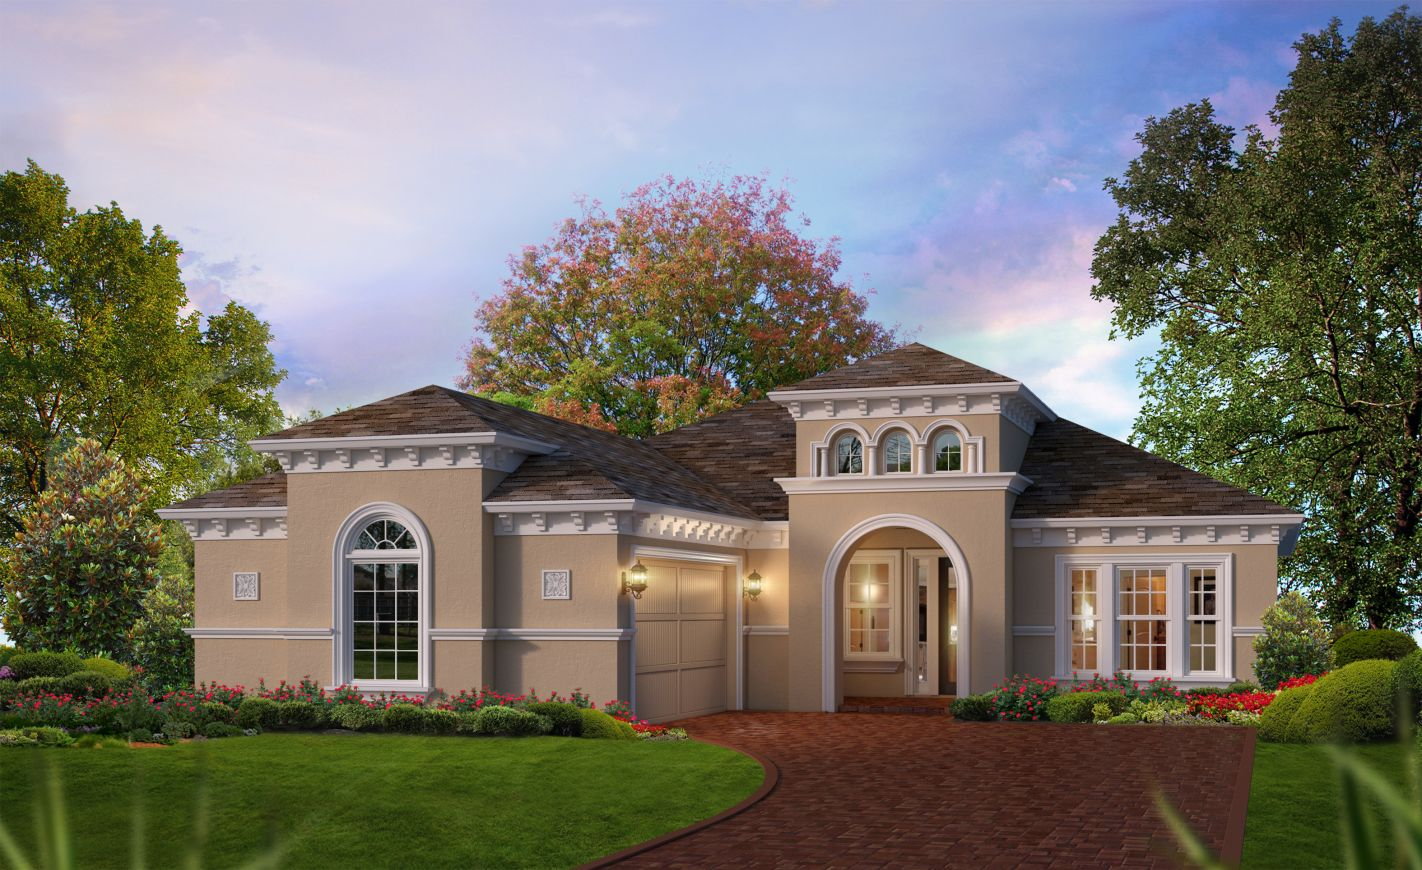 Jacksonville Homes for Sale - The Emma at Tamaya